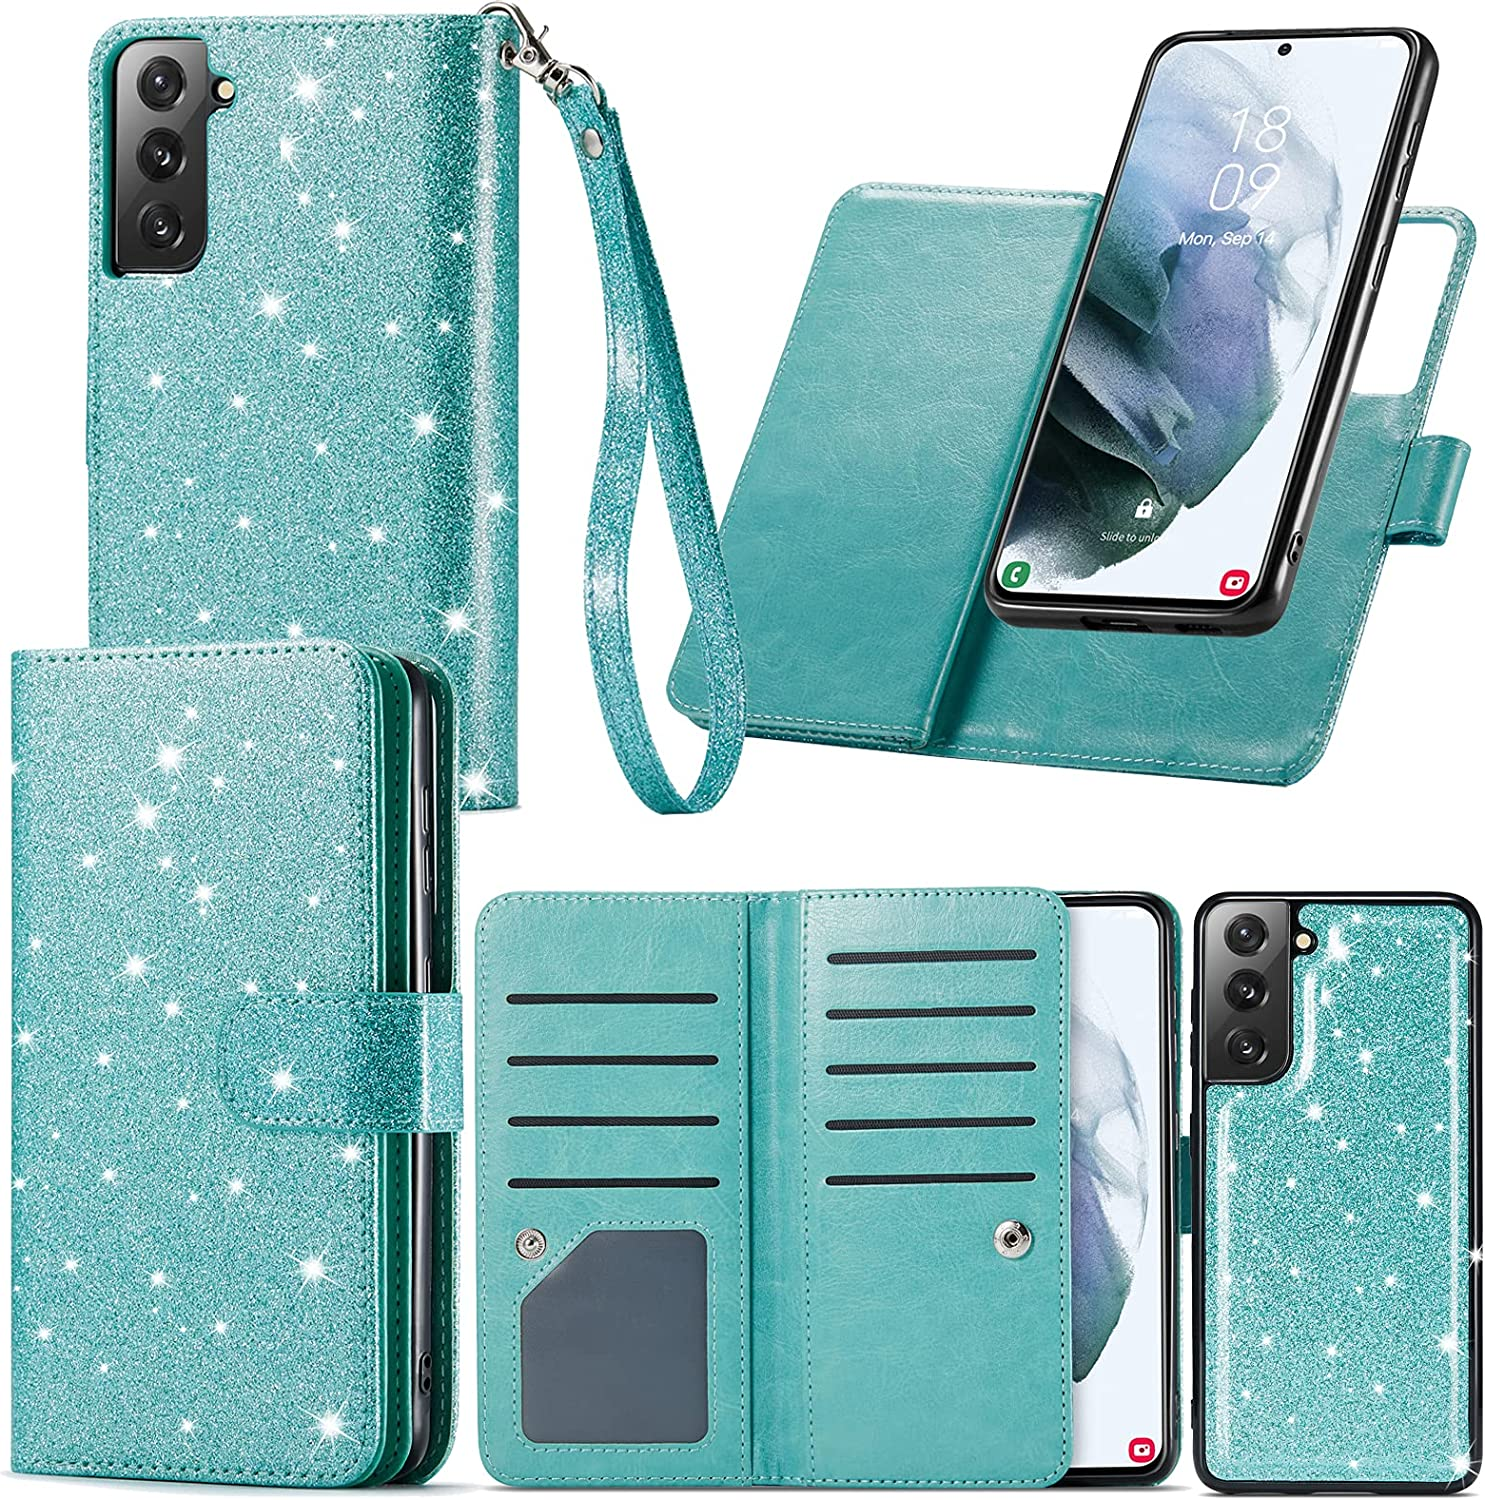 Varikke Samsung Galaxy S21 Case Wallet, Galaxy S21 Case with 9 Card Holder & Powerful Magnetic Detachable Cover & Kickstand Strap Lanyard Glitter PU Leather Flip Wallet Case for Samsung S21 6.2